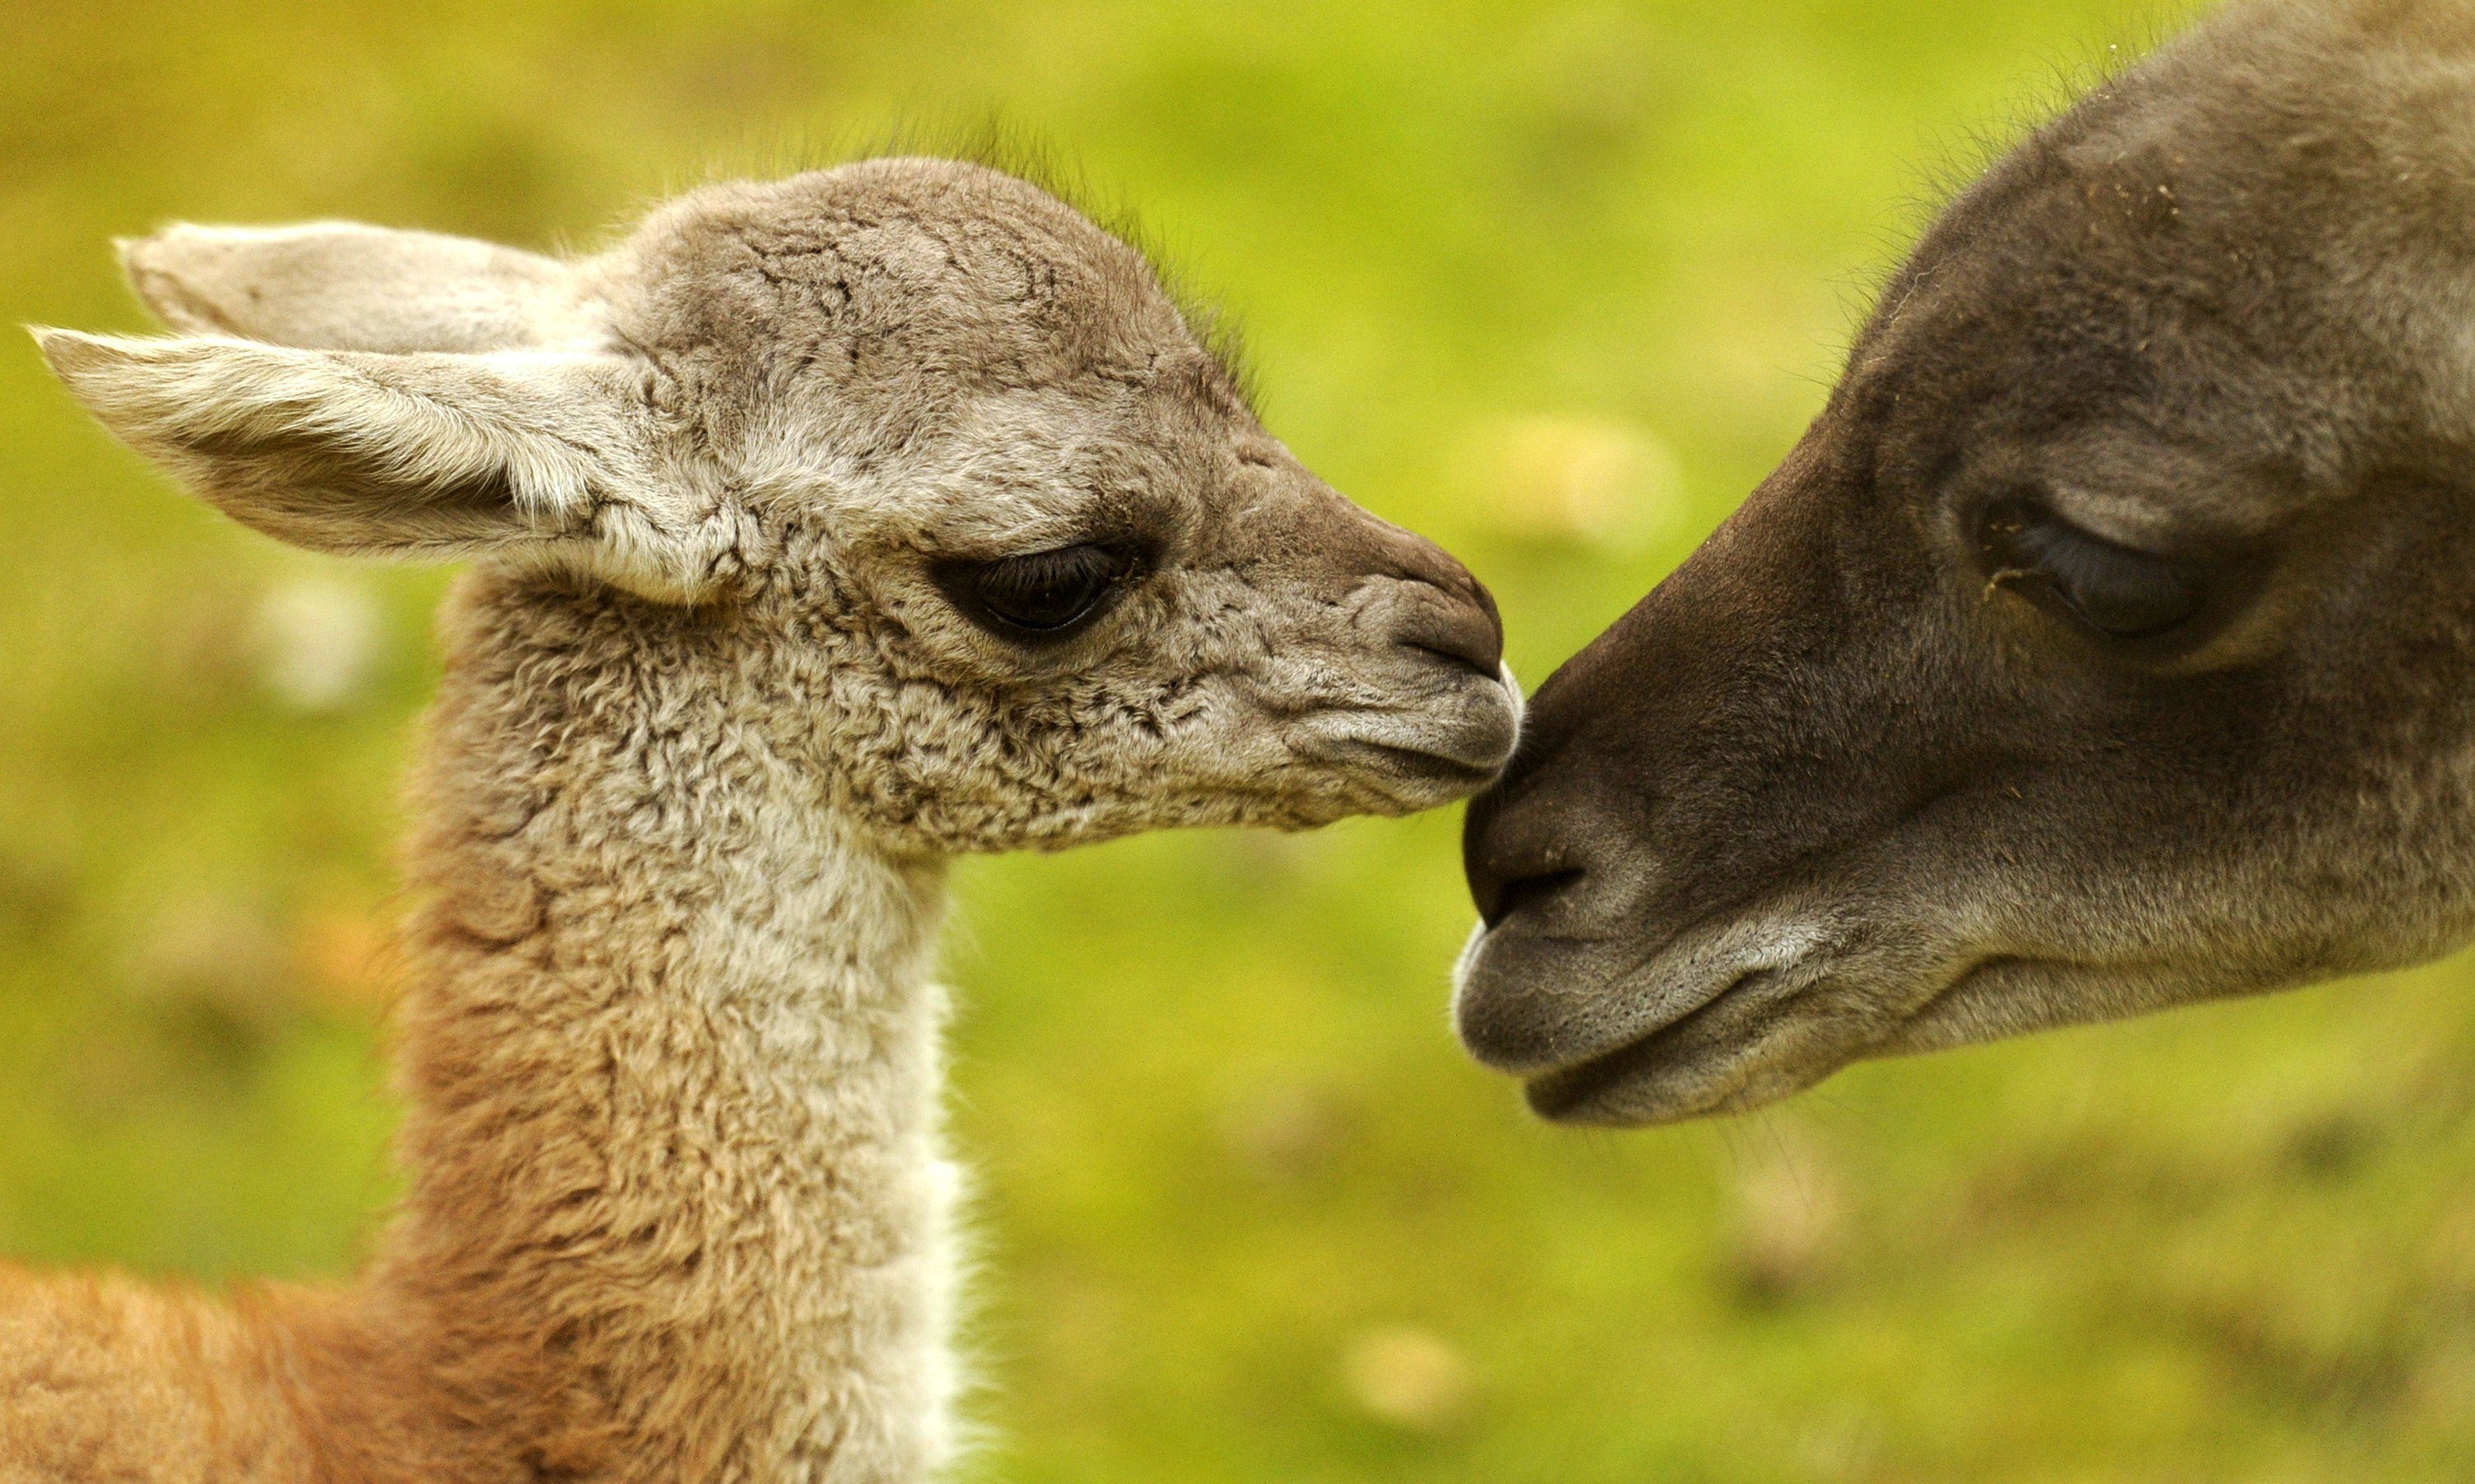 animal animals baby sweet cute adorable stress getty guanaco slideshow afp andersen odd relieve impossibly deserve because had week stressed